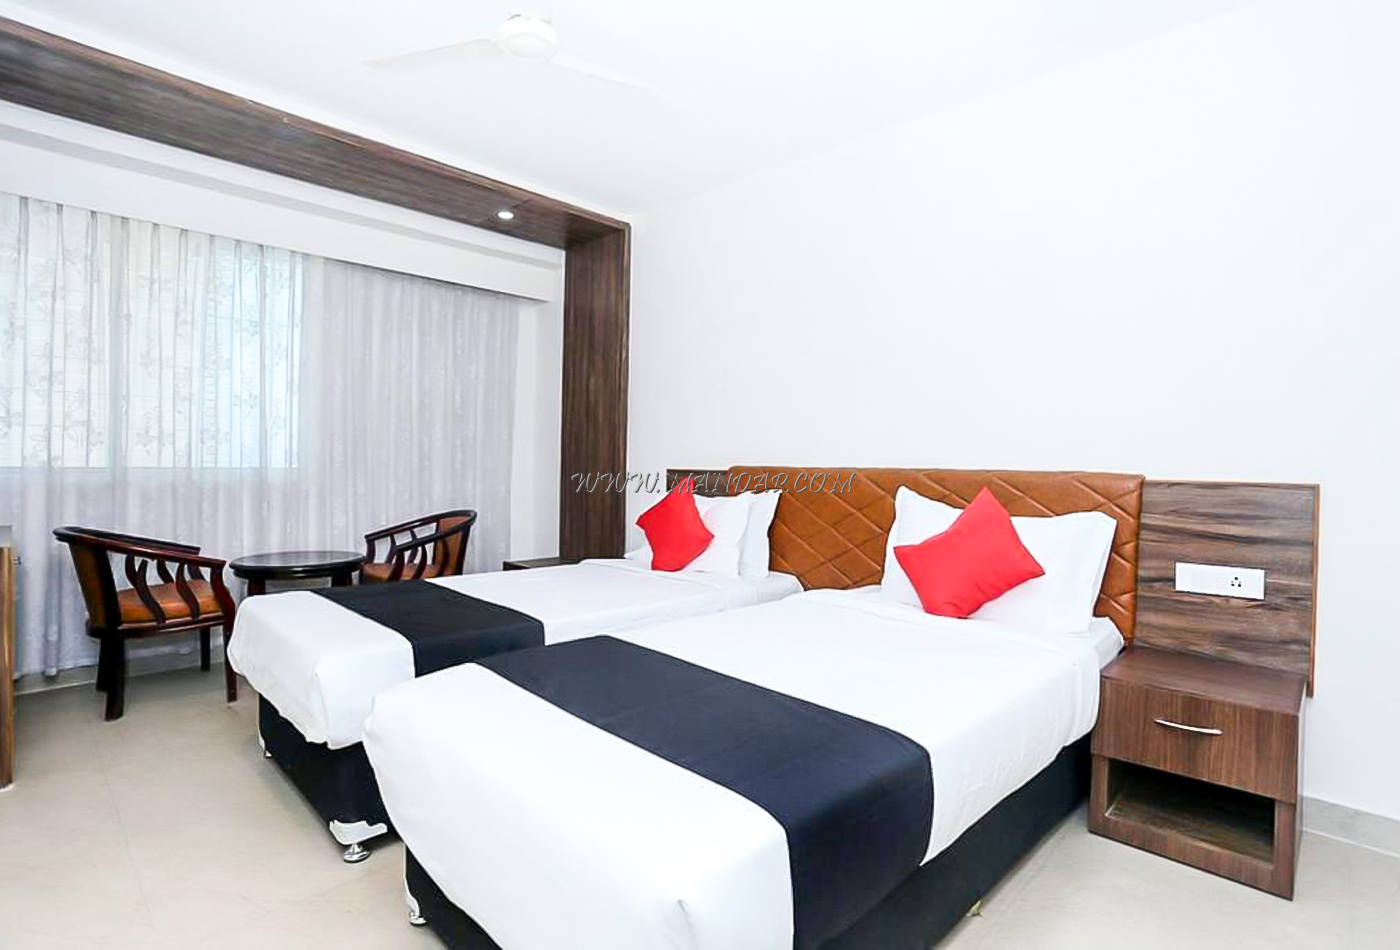 Find the availability of the The South Gate (A/C) in Thampanoor, Trivandrum and avail special offers